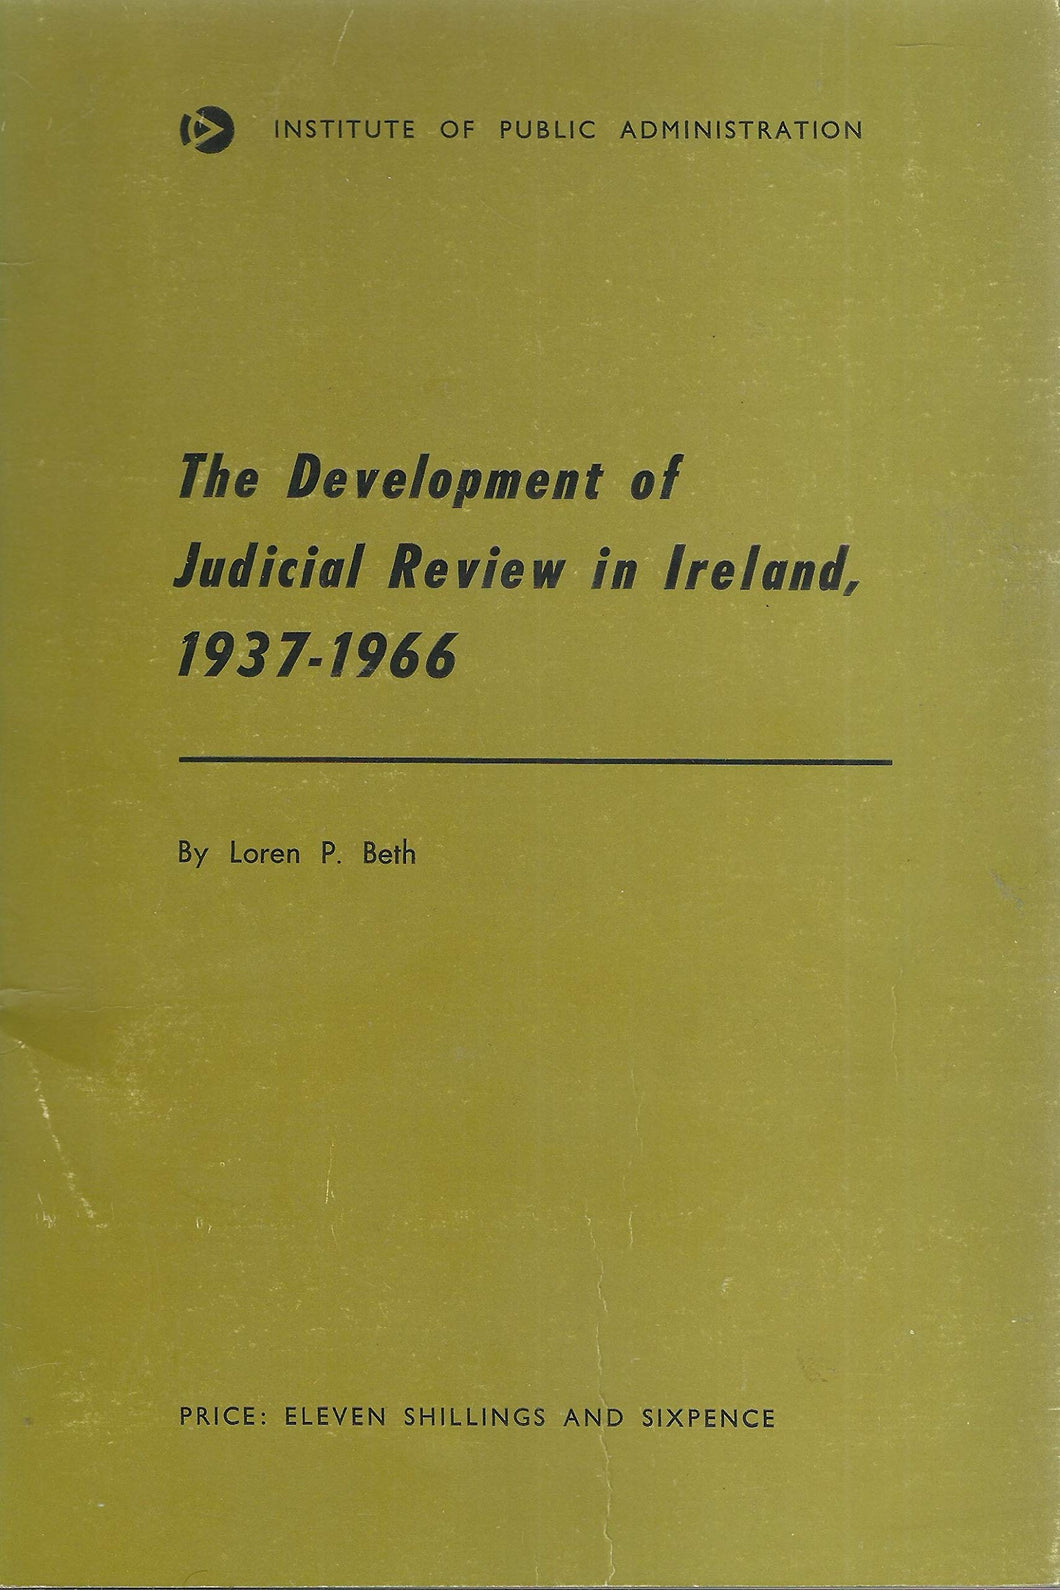 The Development of Judicial Review in Ireland, 1937-1966